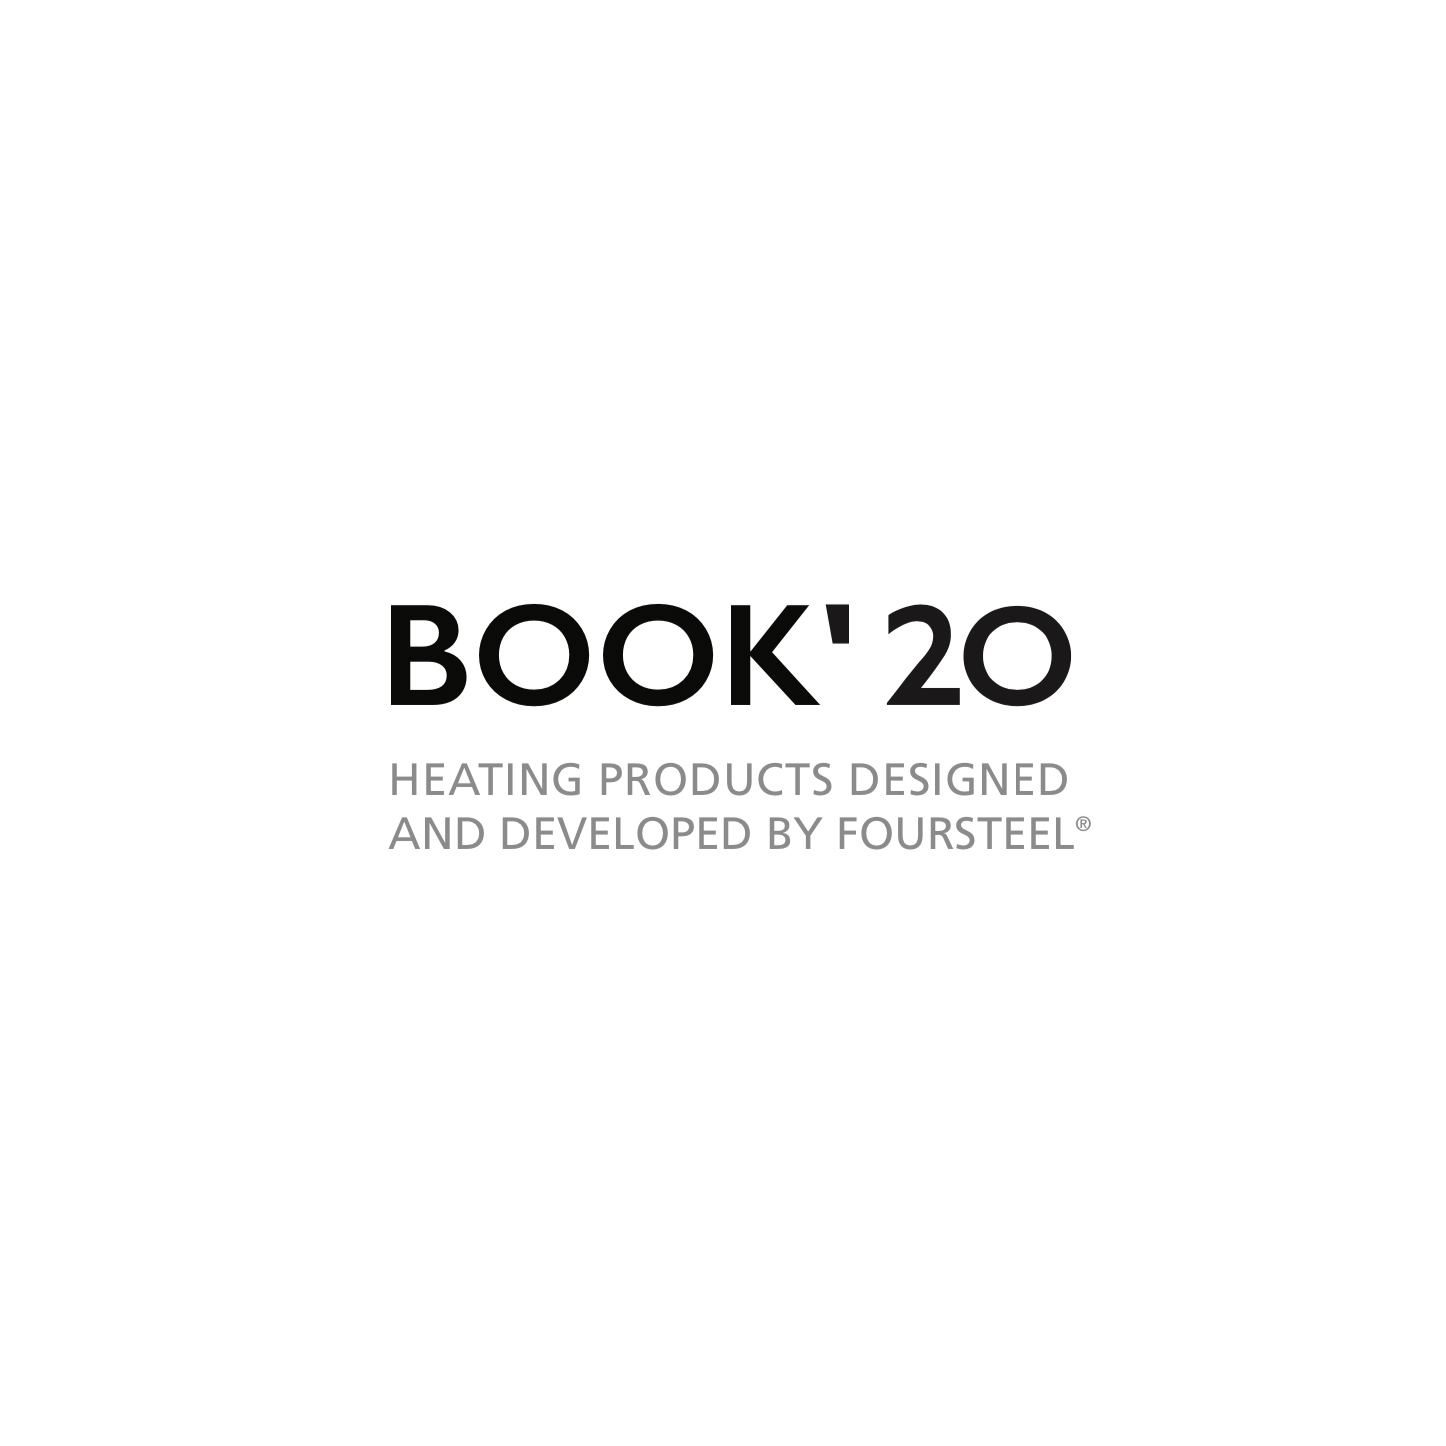 BOOK 2020 NORTH AMERICA